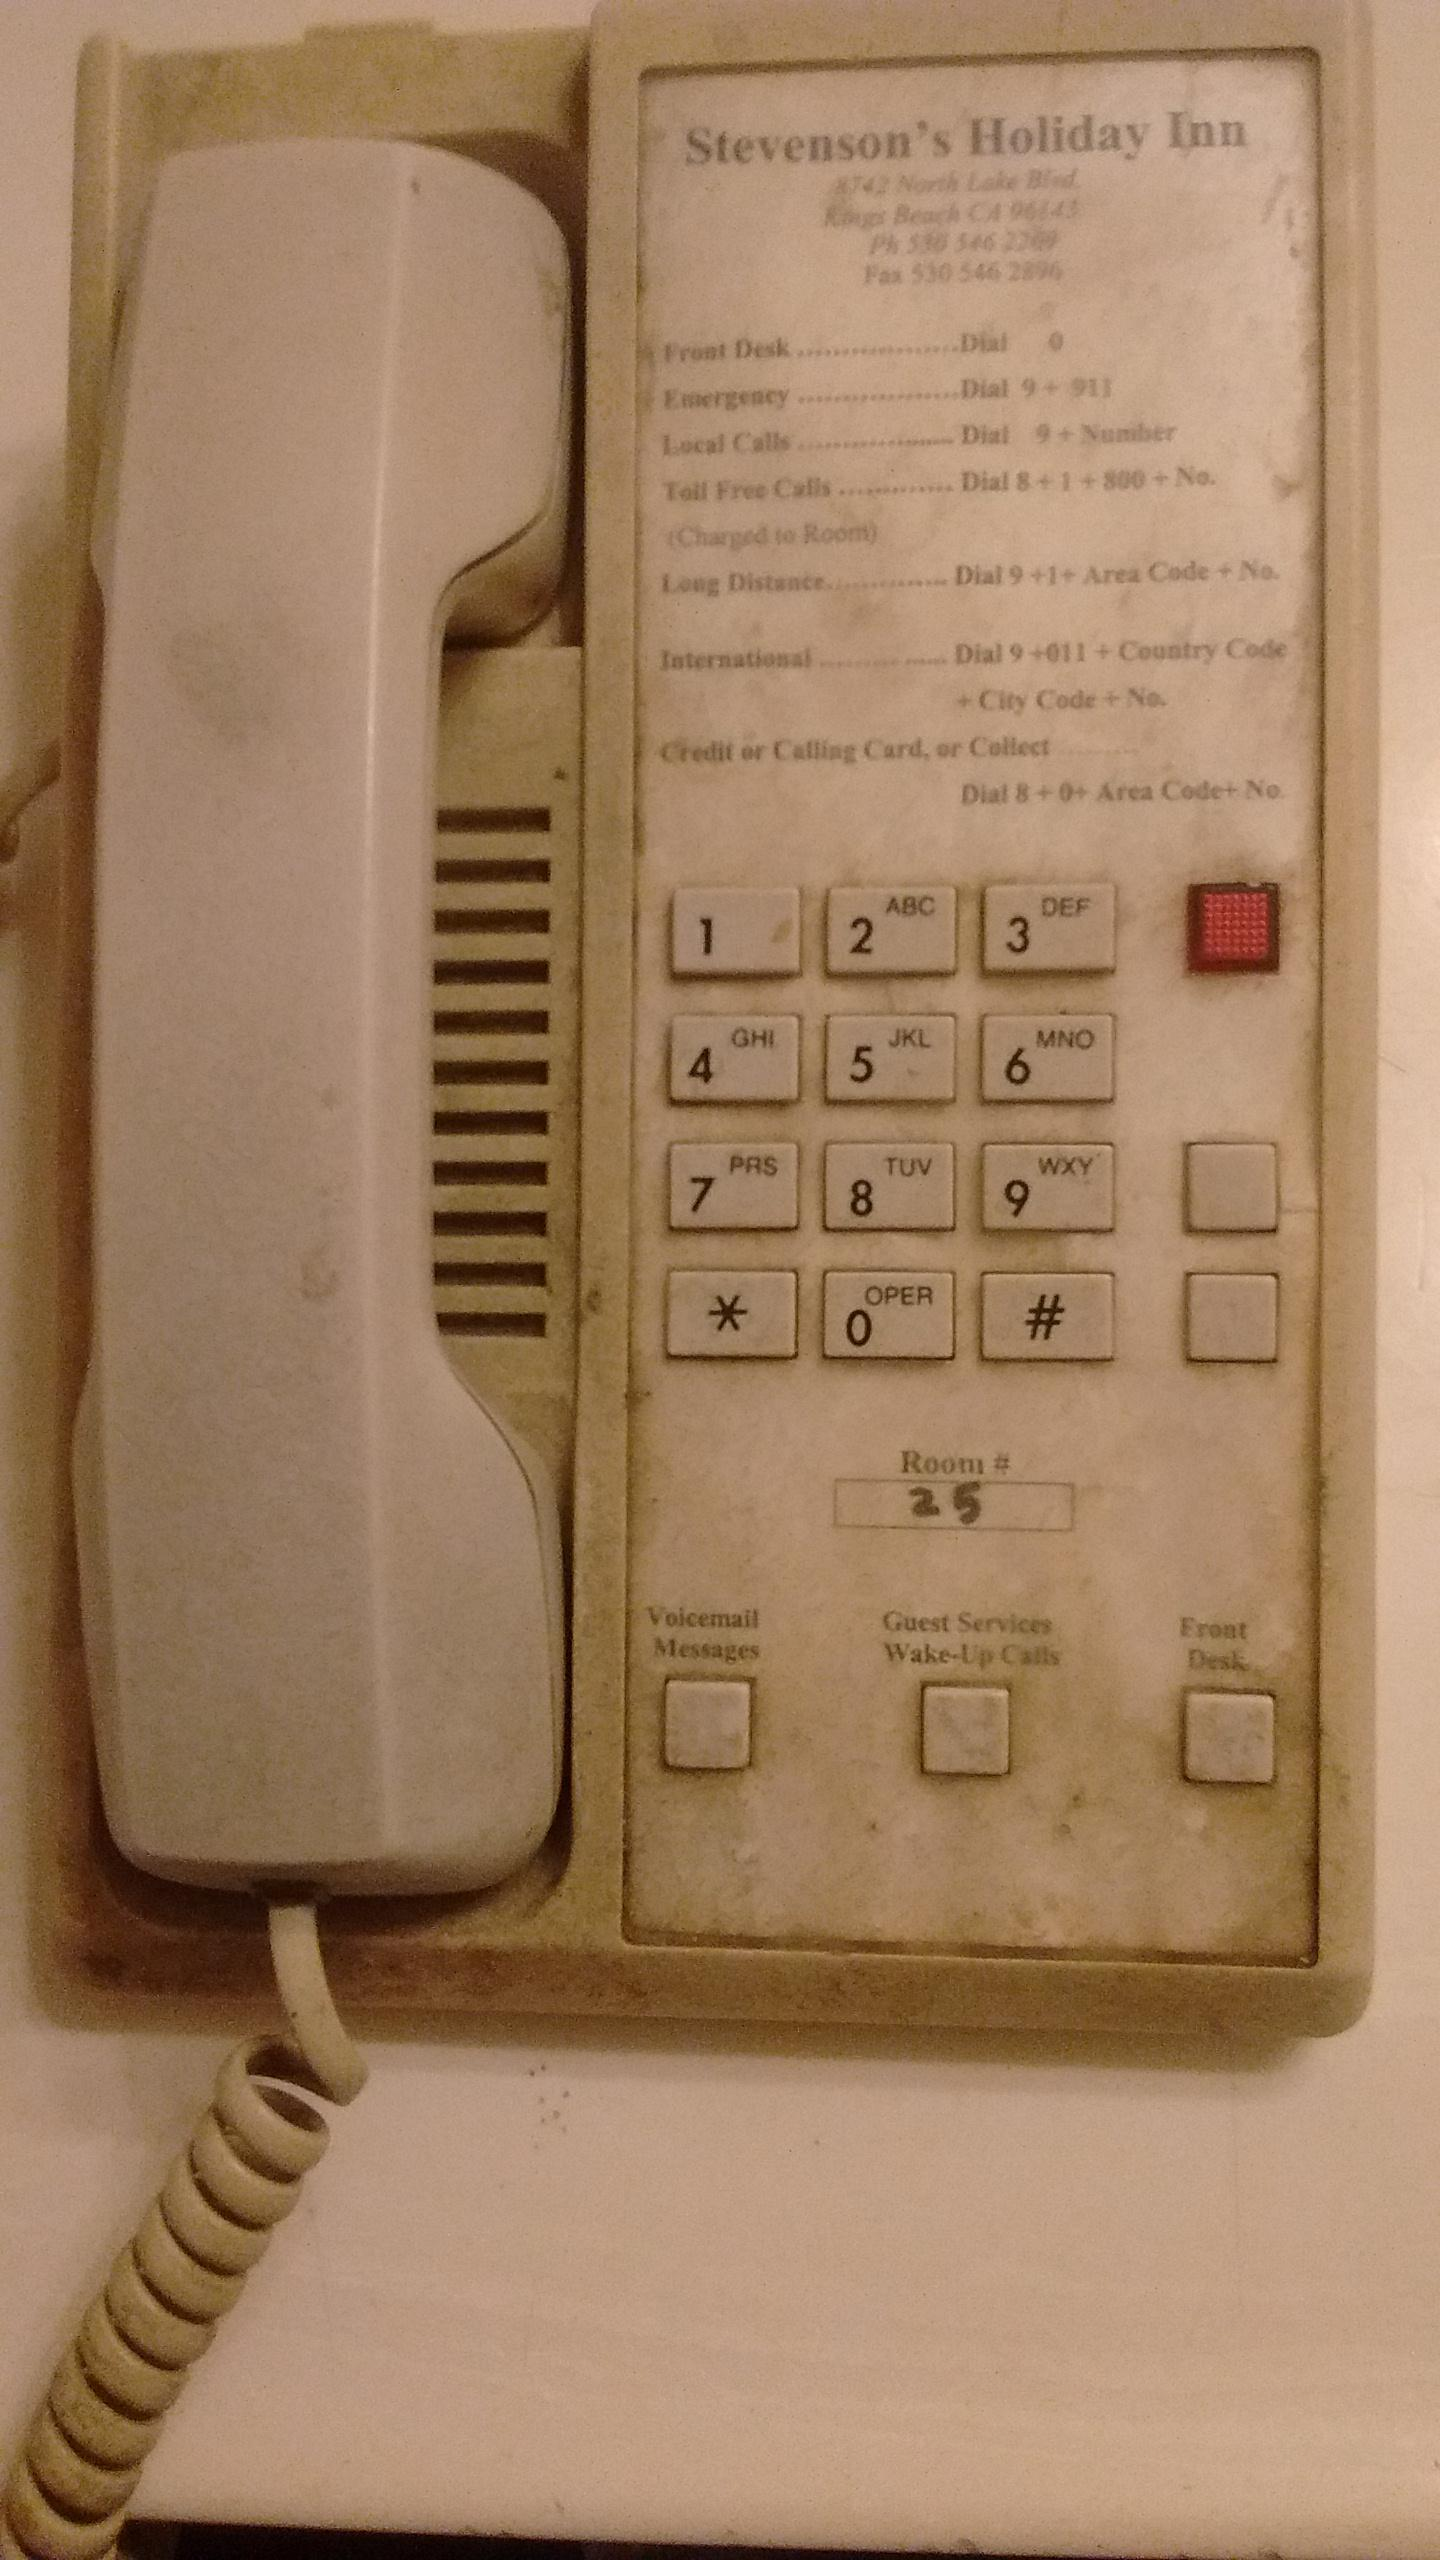 Typical telephone in room